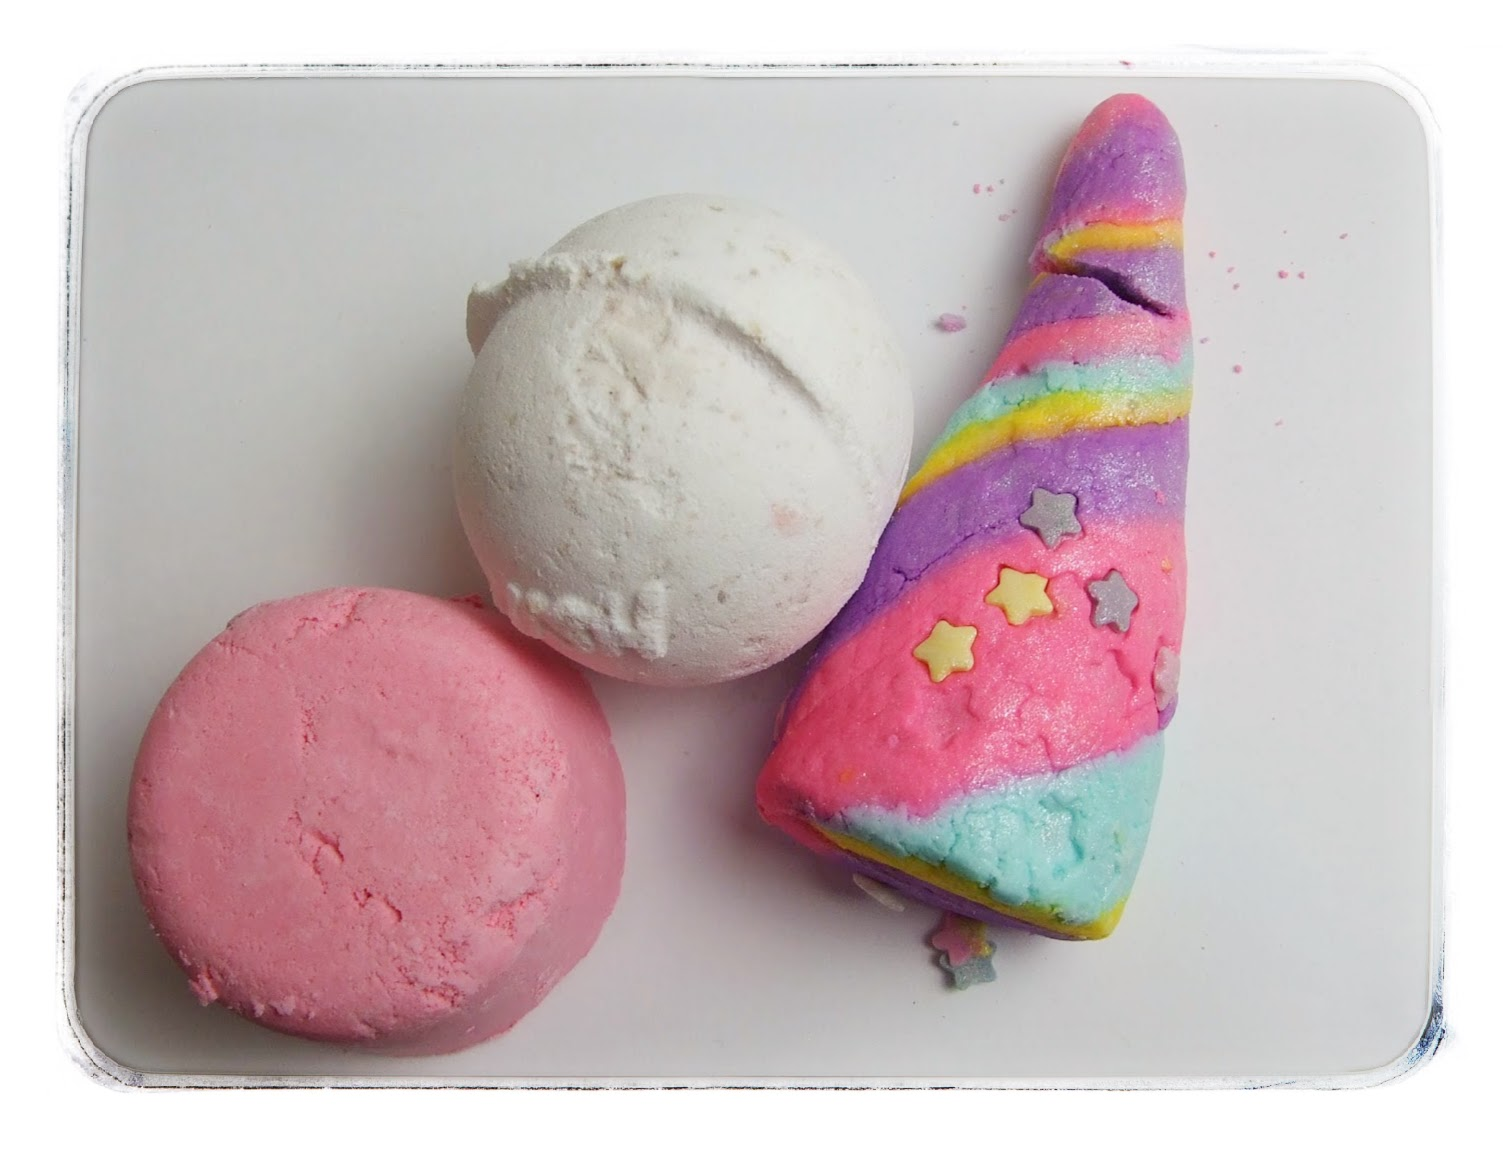 lush haul beauty blog review unicorn horn butterball melting marshmallow bath bomb